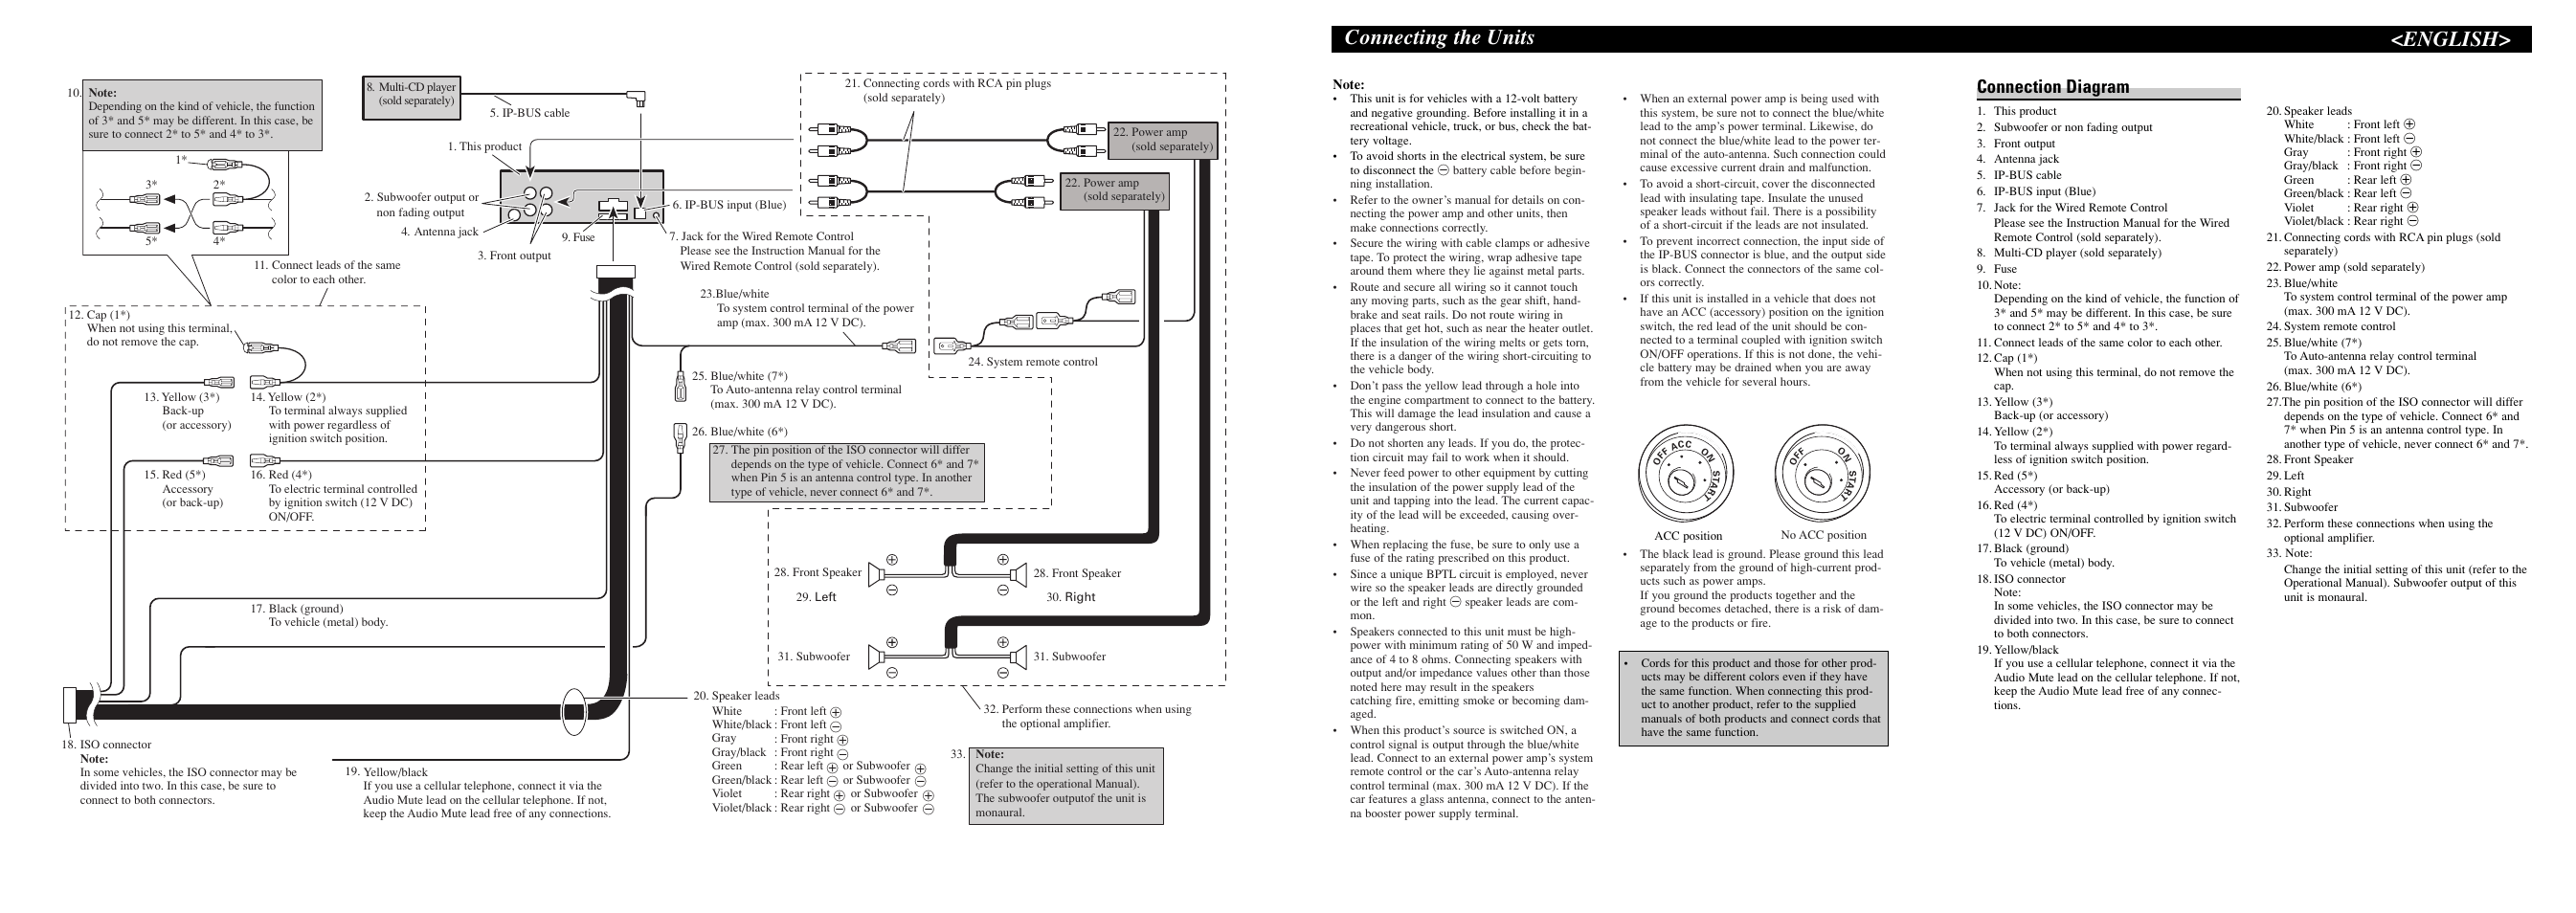 Wiring Diagram For Pioneer Deh P3700mp Auto Electrical Ipod Cable Clarion Head Unit P5800mp 34